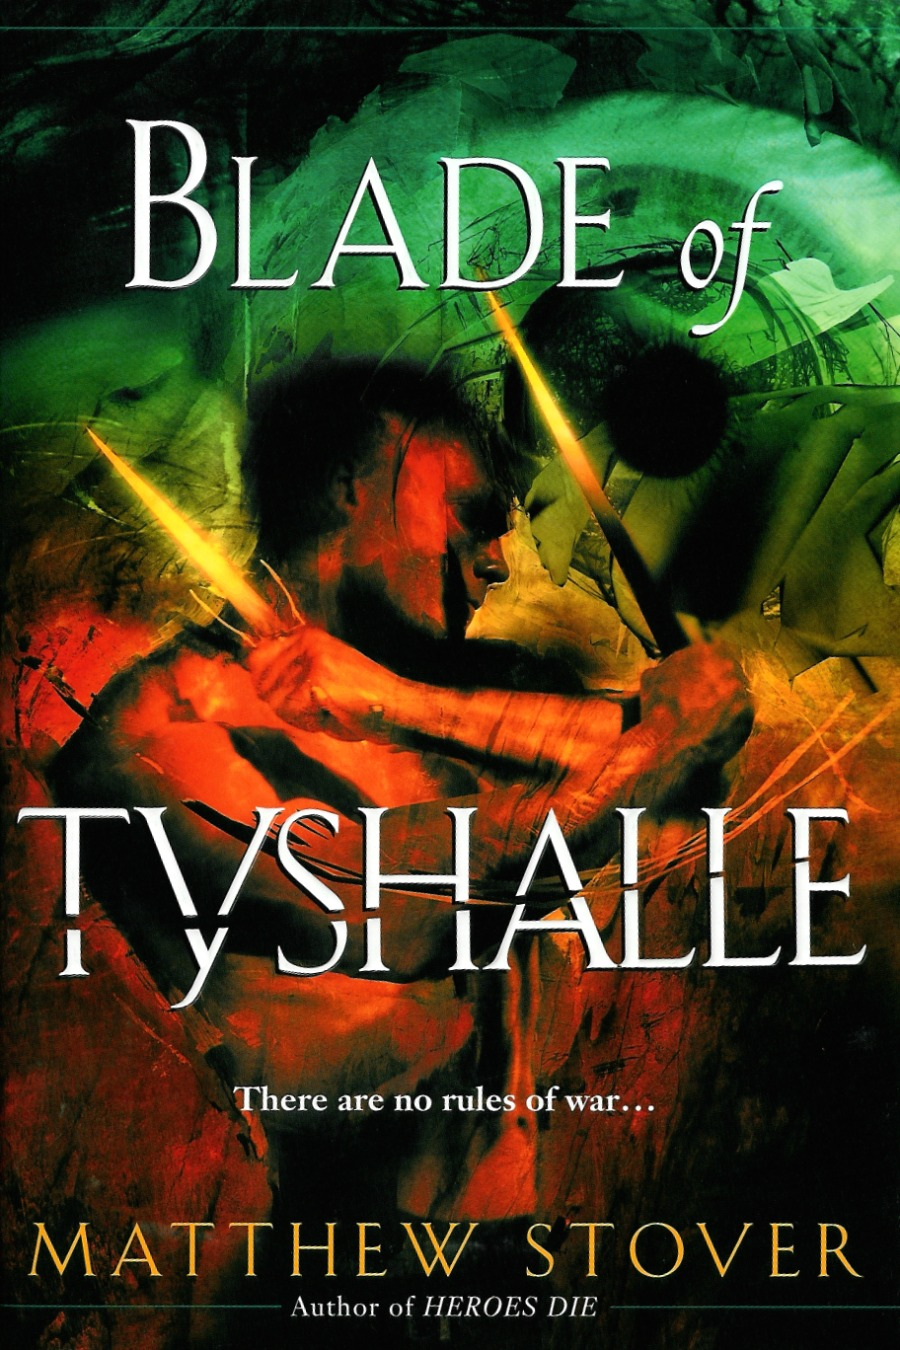 blade-of-tyshalle-cover3.jpg